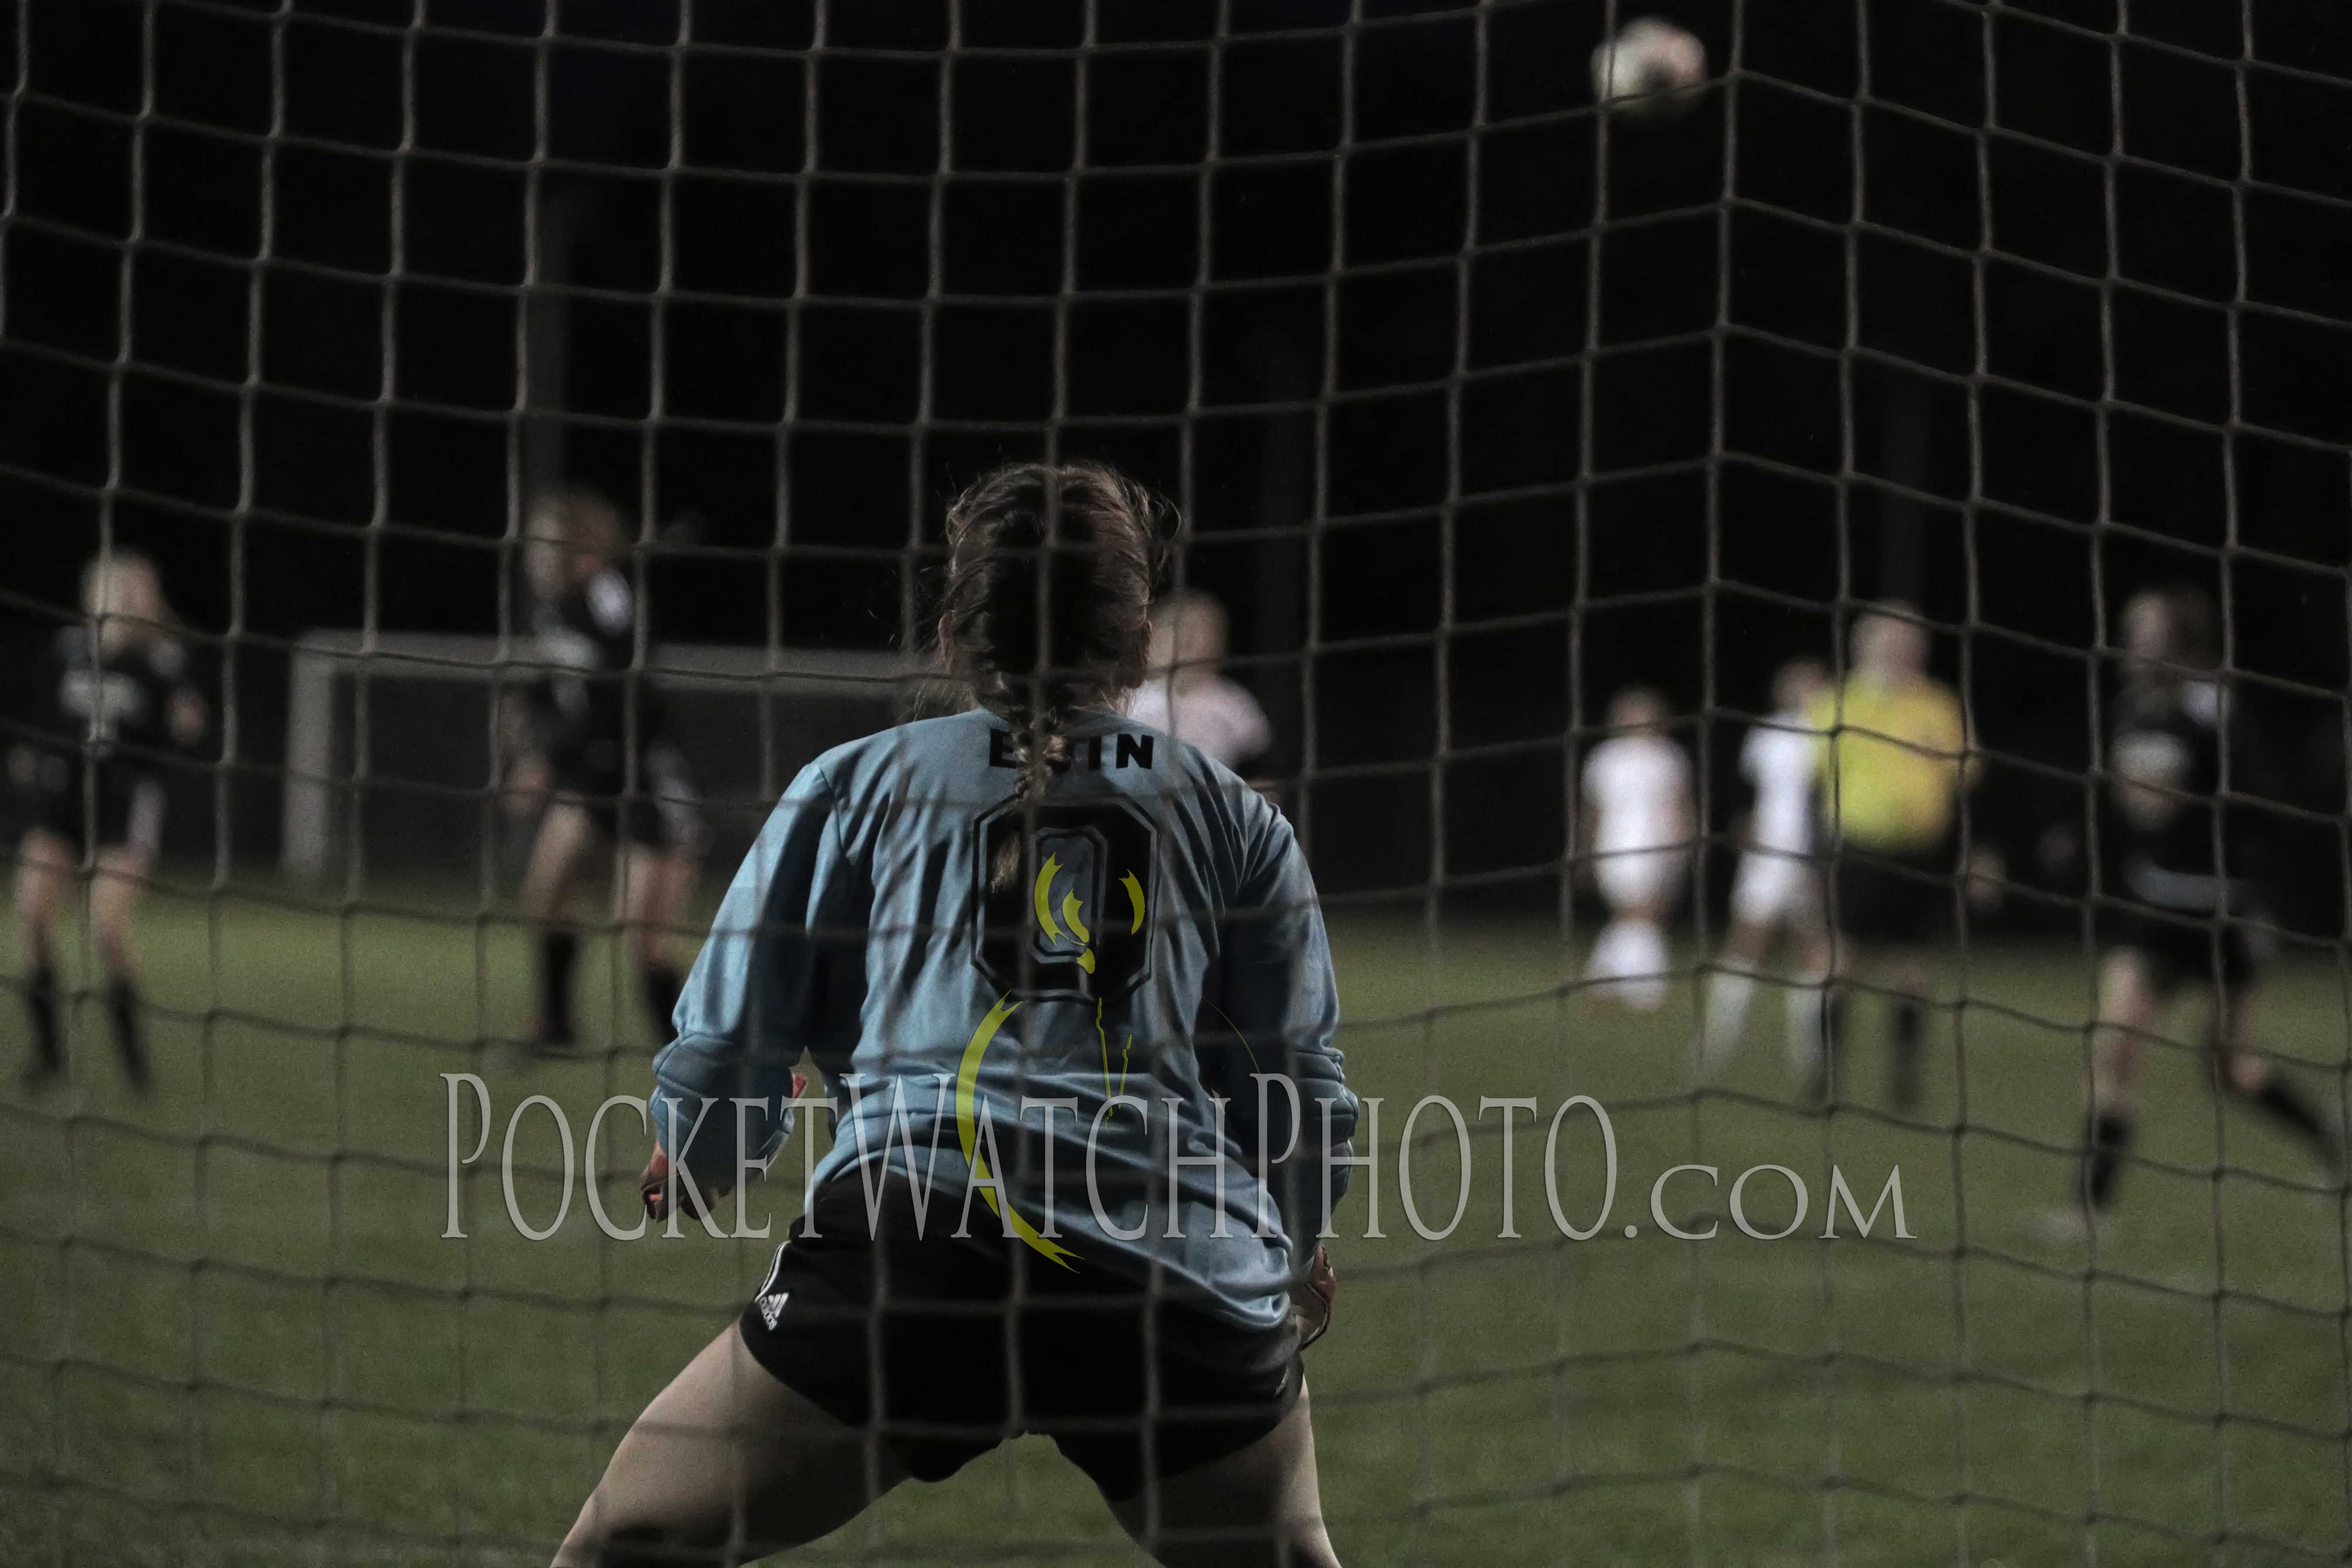 High School Girls Soccer Photography More Photos At Www Pocketwatchphoto Com P E M Bulldogs Girls Soccer Photography Soccer Photography Girls Soccer